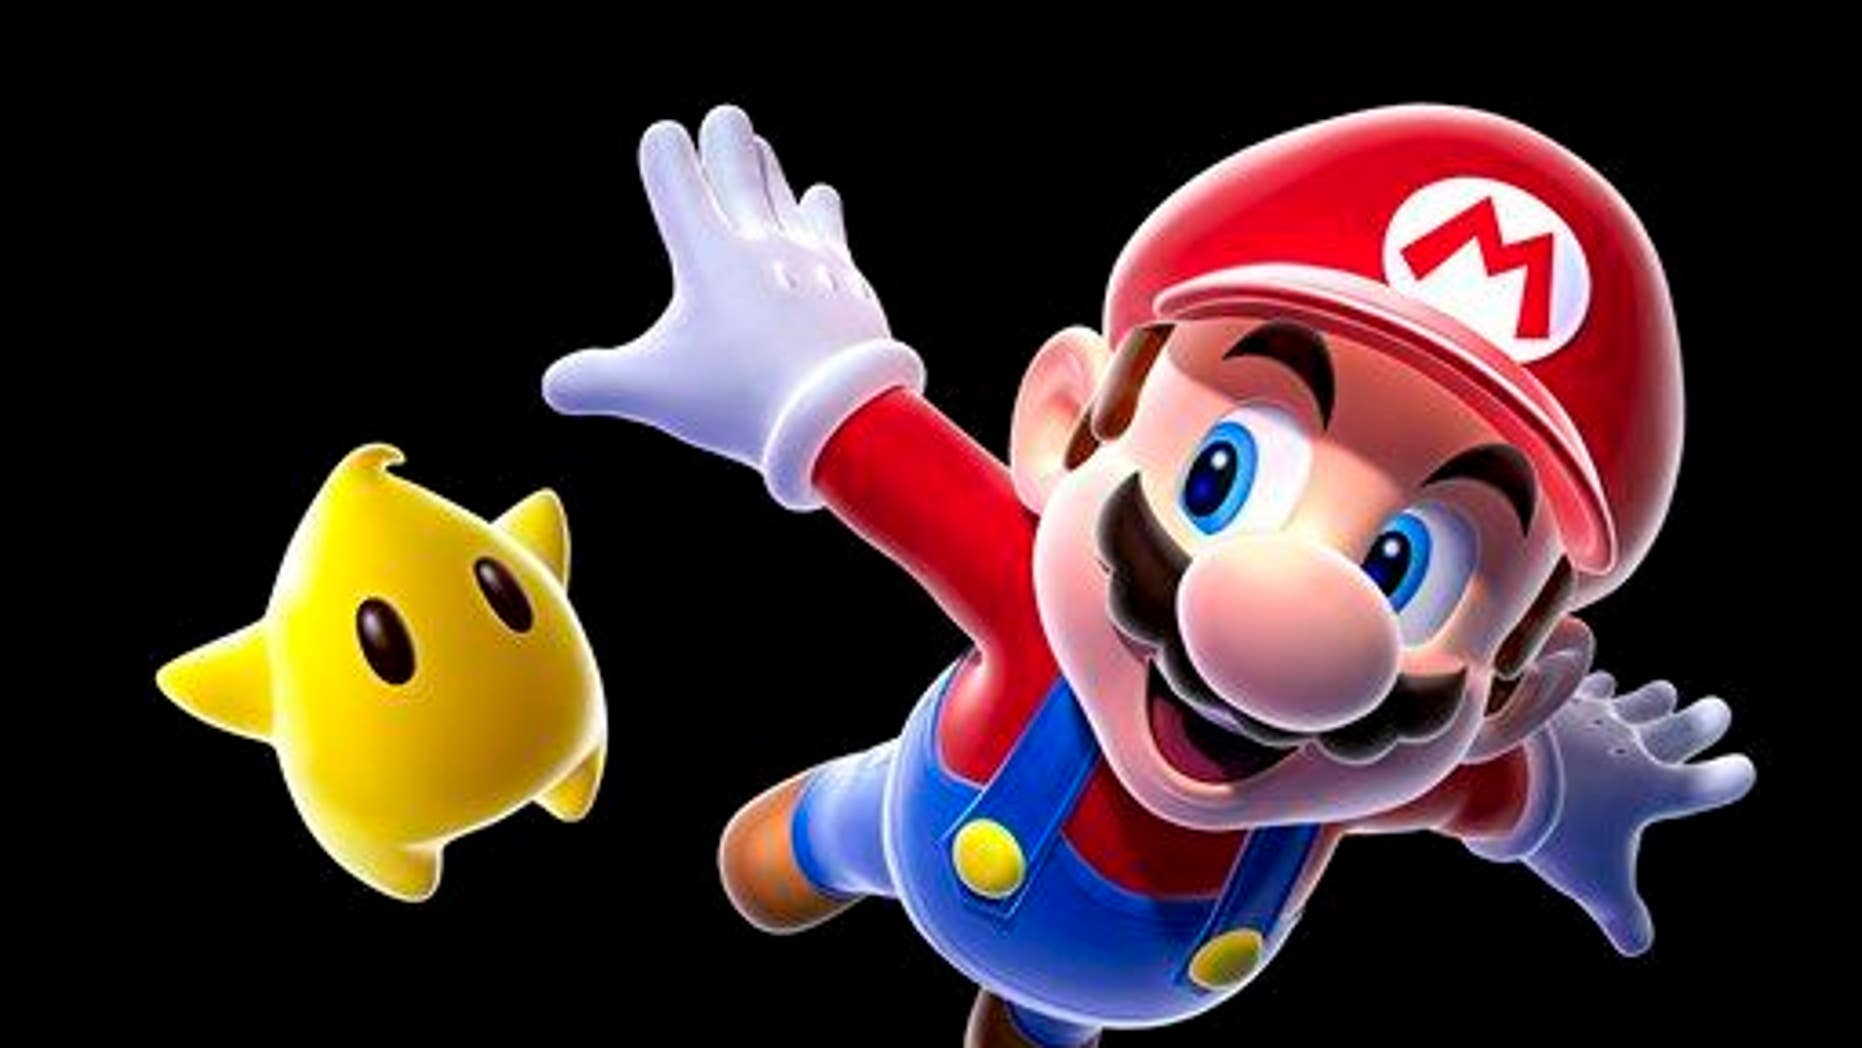 """In this image provided by Nintendo, video game icon Mario is shown. Even though Mario hasn't changed much in nearly three decades, the latest game he stars in, the newly released """"The New Super Mario Bros. Wii,"""" is one of the holiday season's top titles."""